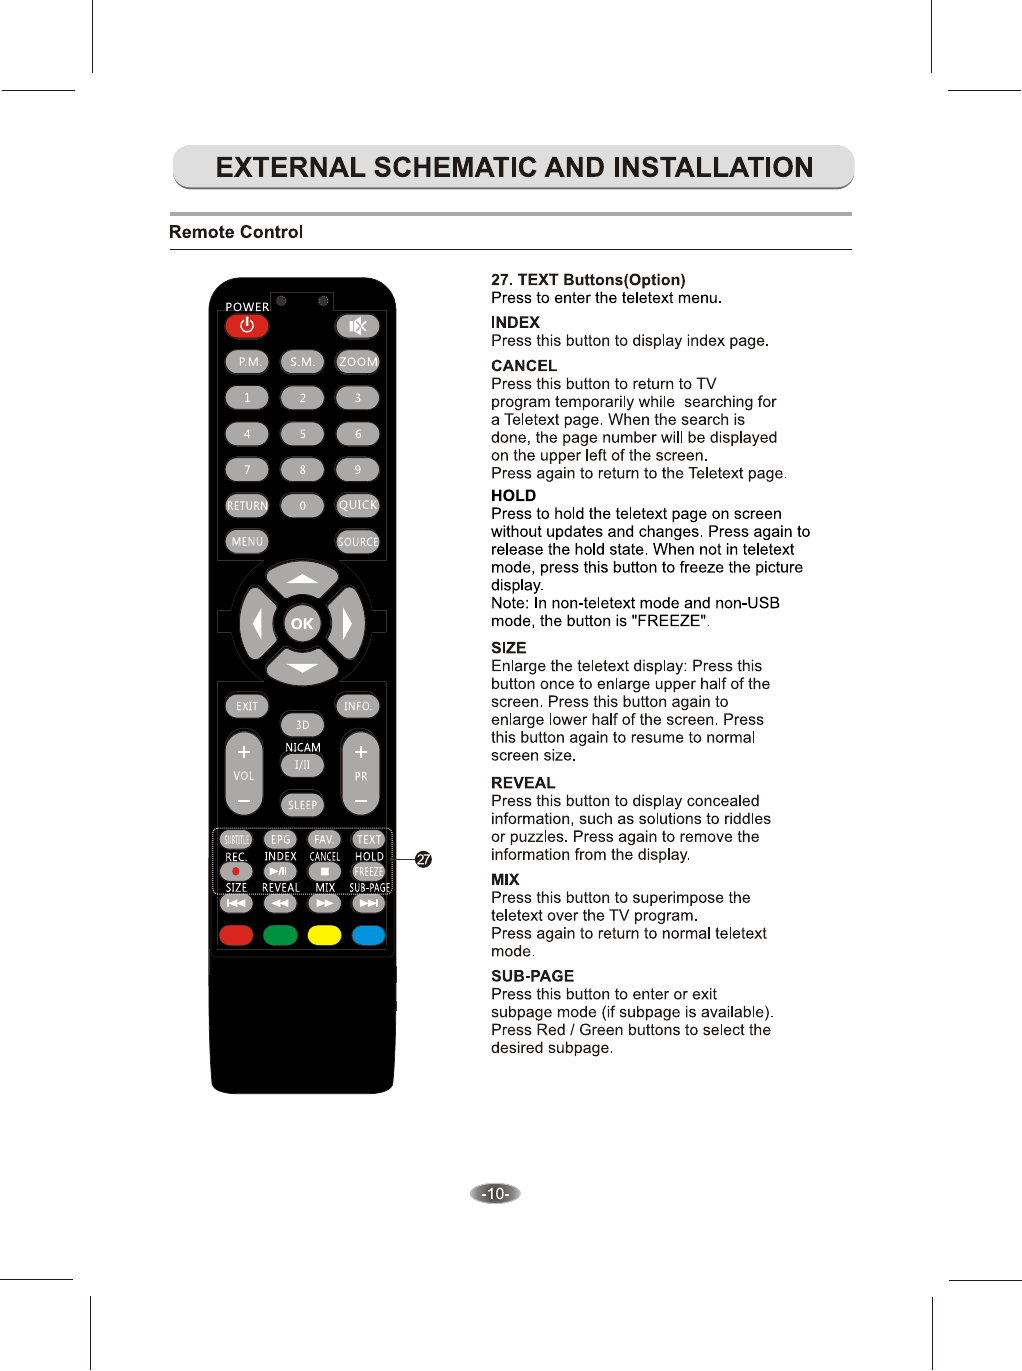 Skyworth tv manual daily instruction manual guides page 11 of skyworth tv antenna 3 20e 58 user guide manualsonline com rh tv manualsonline com skyworth 55 tv manual skyworth tv 32e3000 manual fandeluxe Images